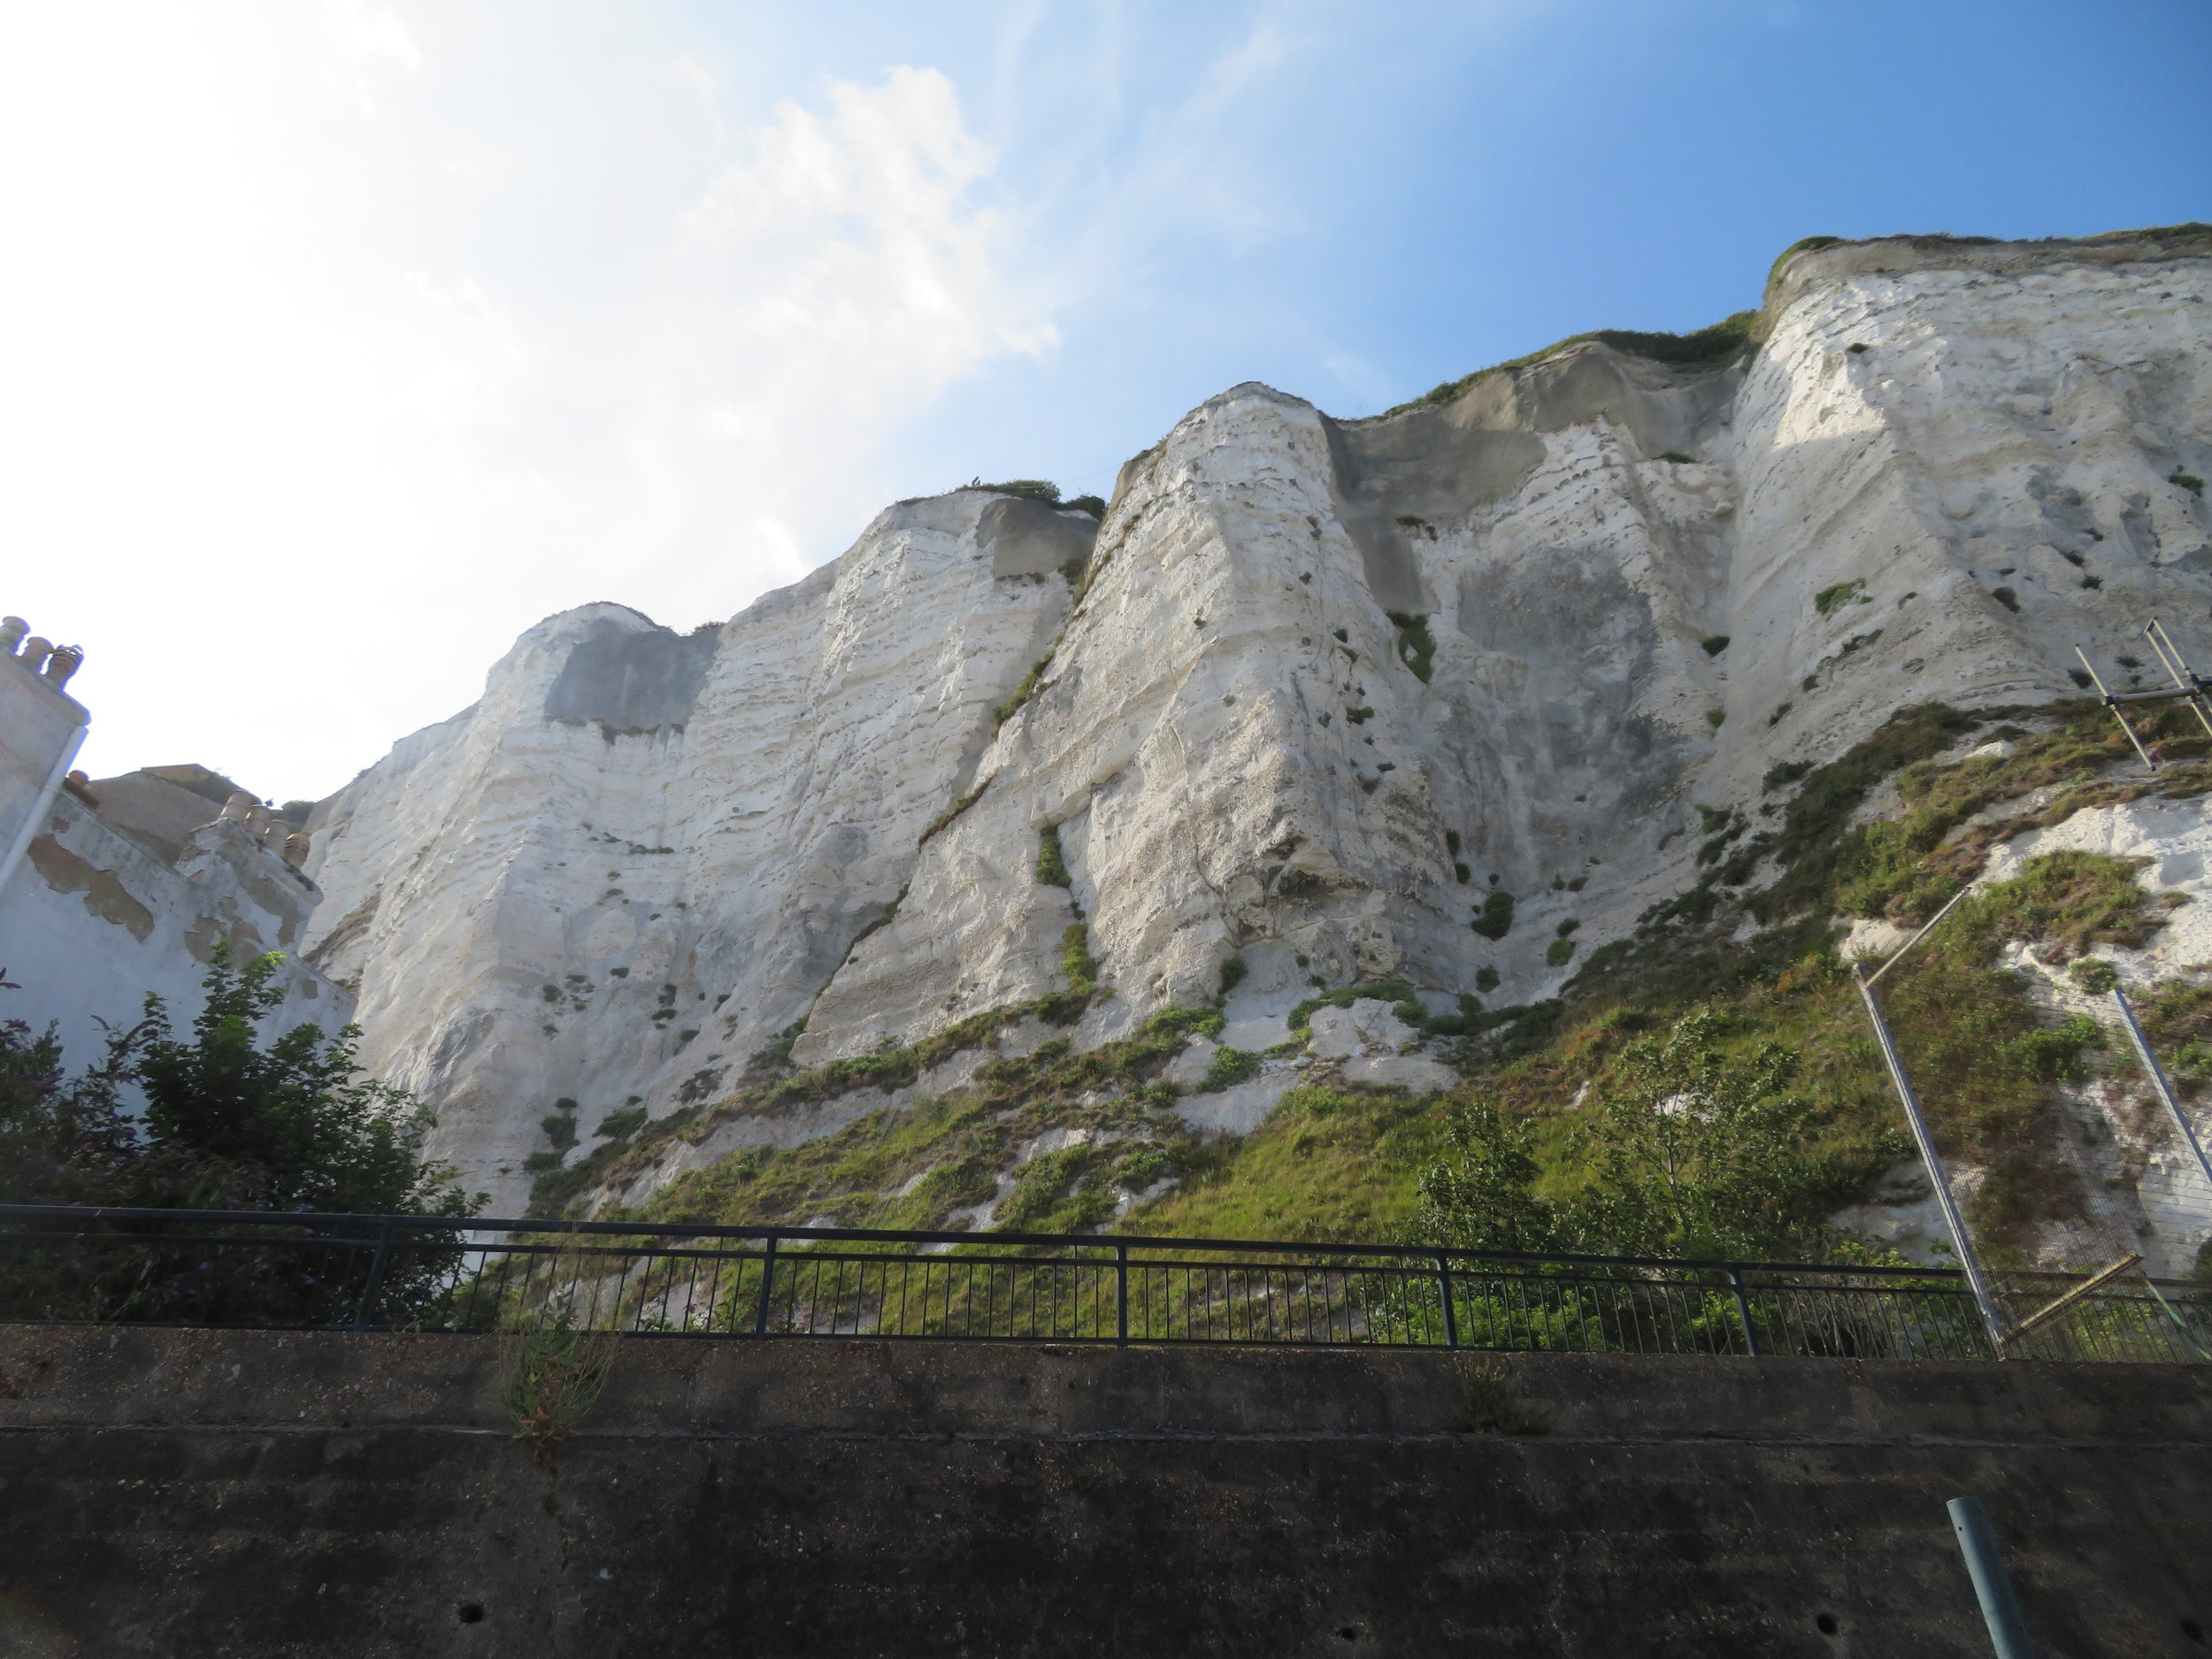 The White Cliffs of Dover are stunningly white!